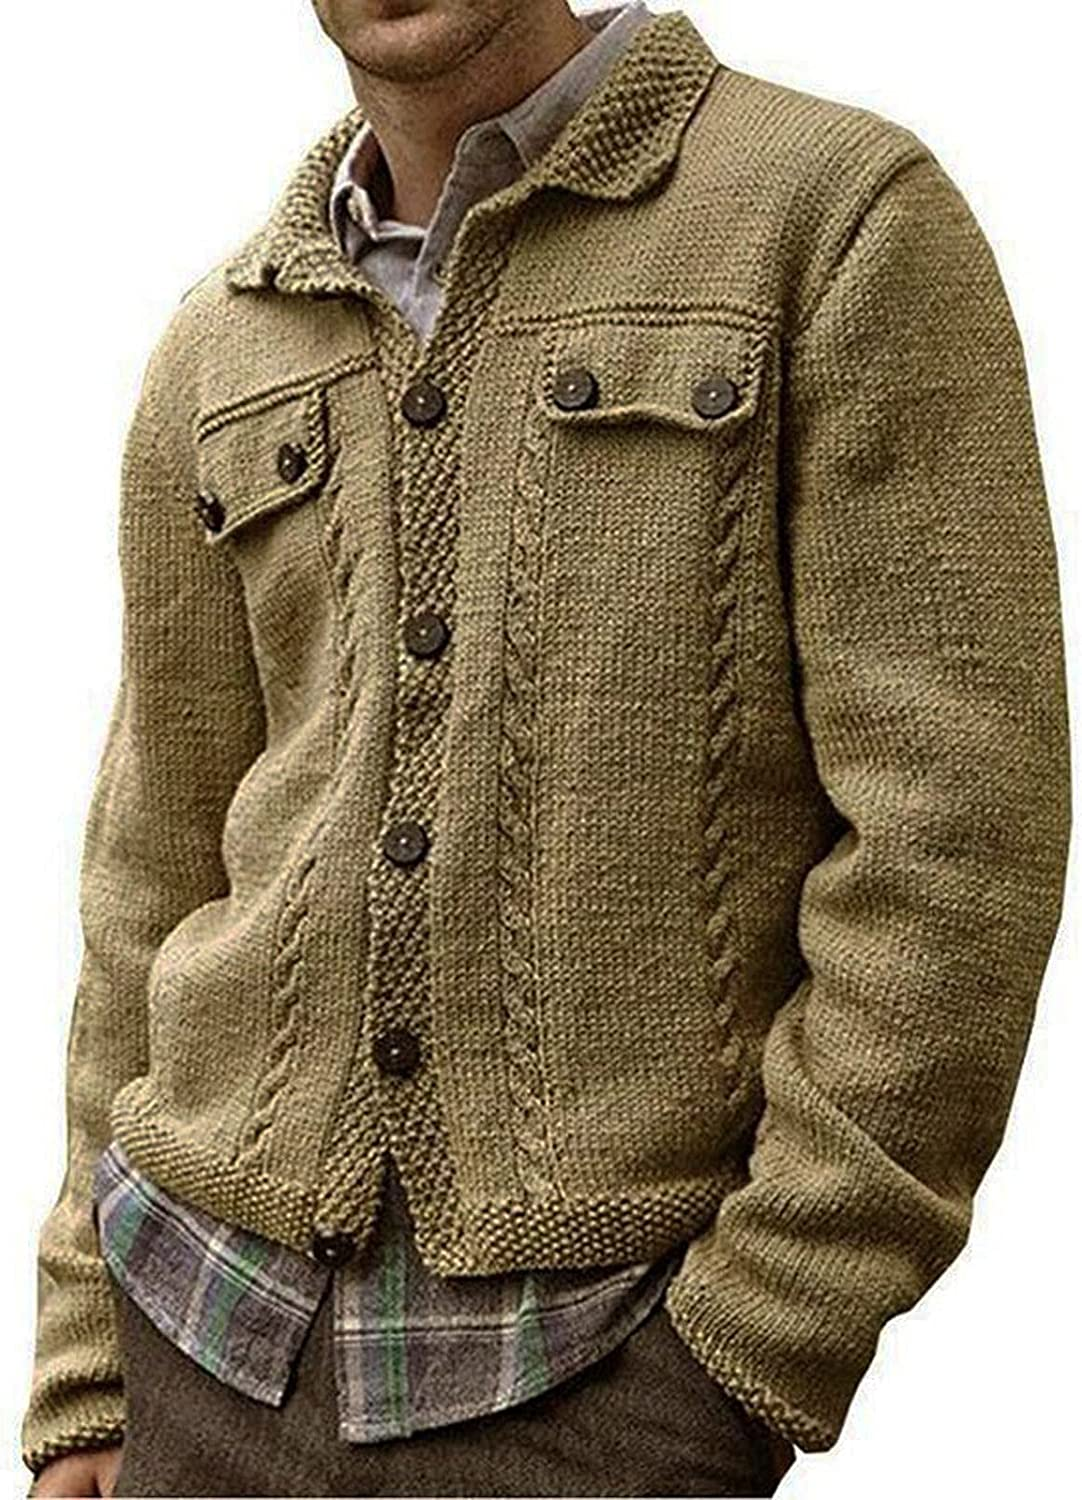 Denver Mall Men's Cardigan Sweaters Solid Color Be super welcome Crew Coat Long Neck L Sleeve